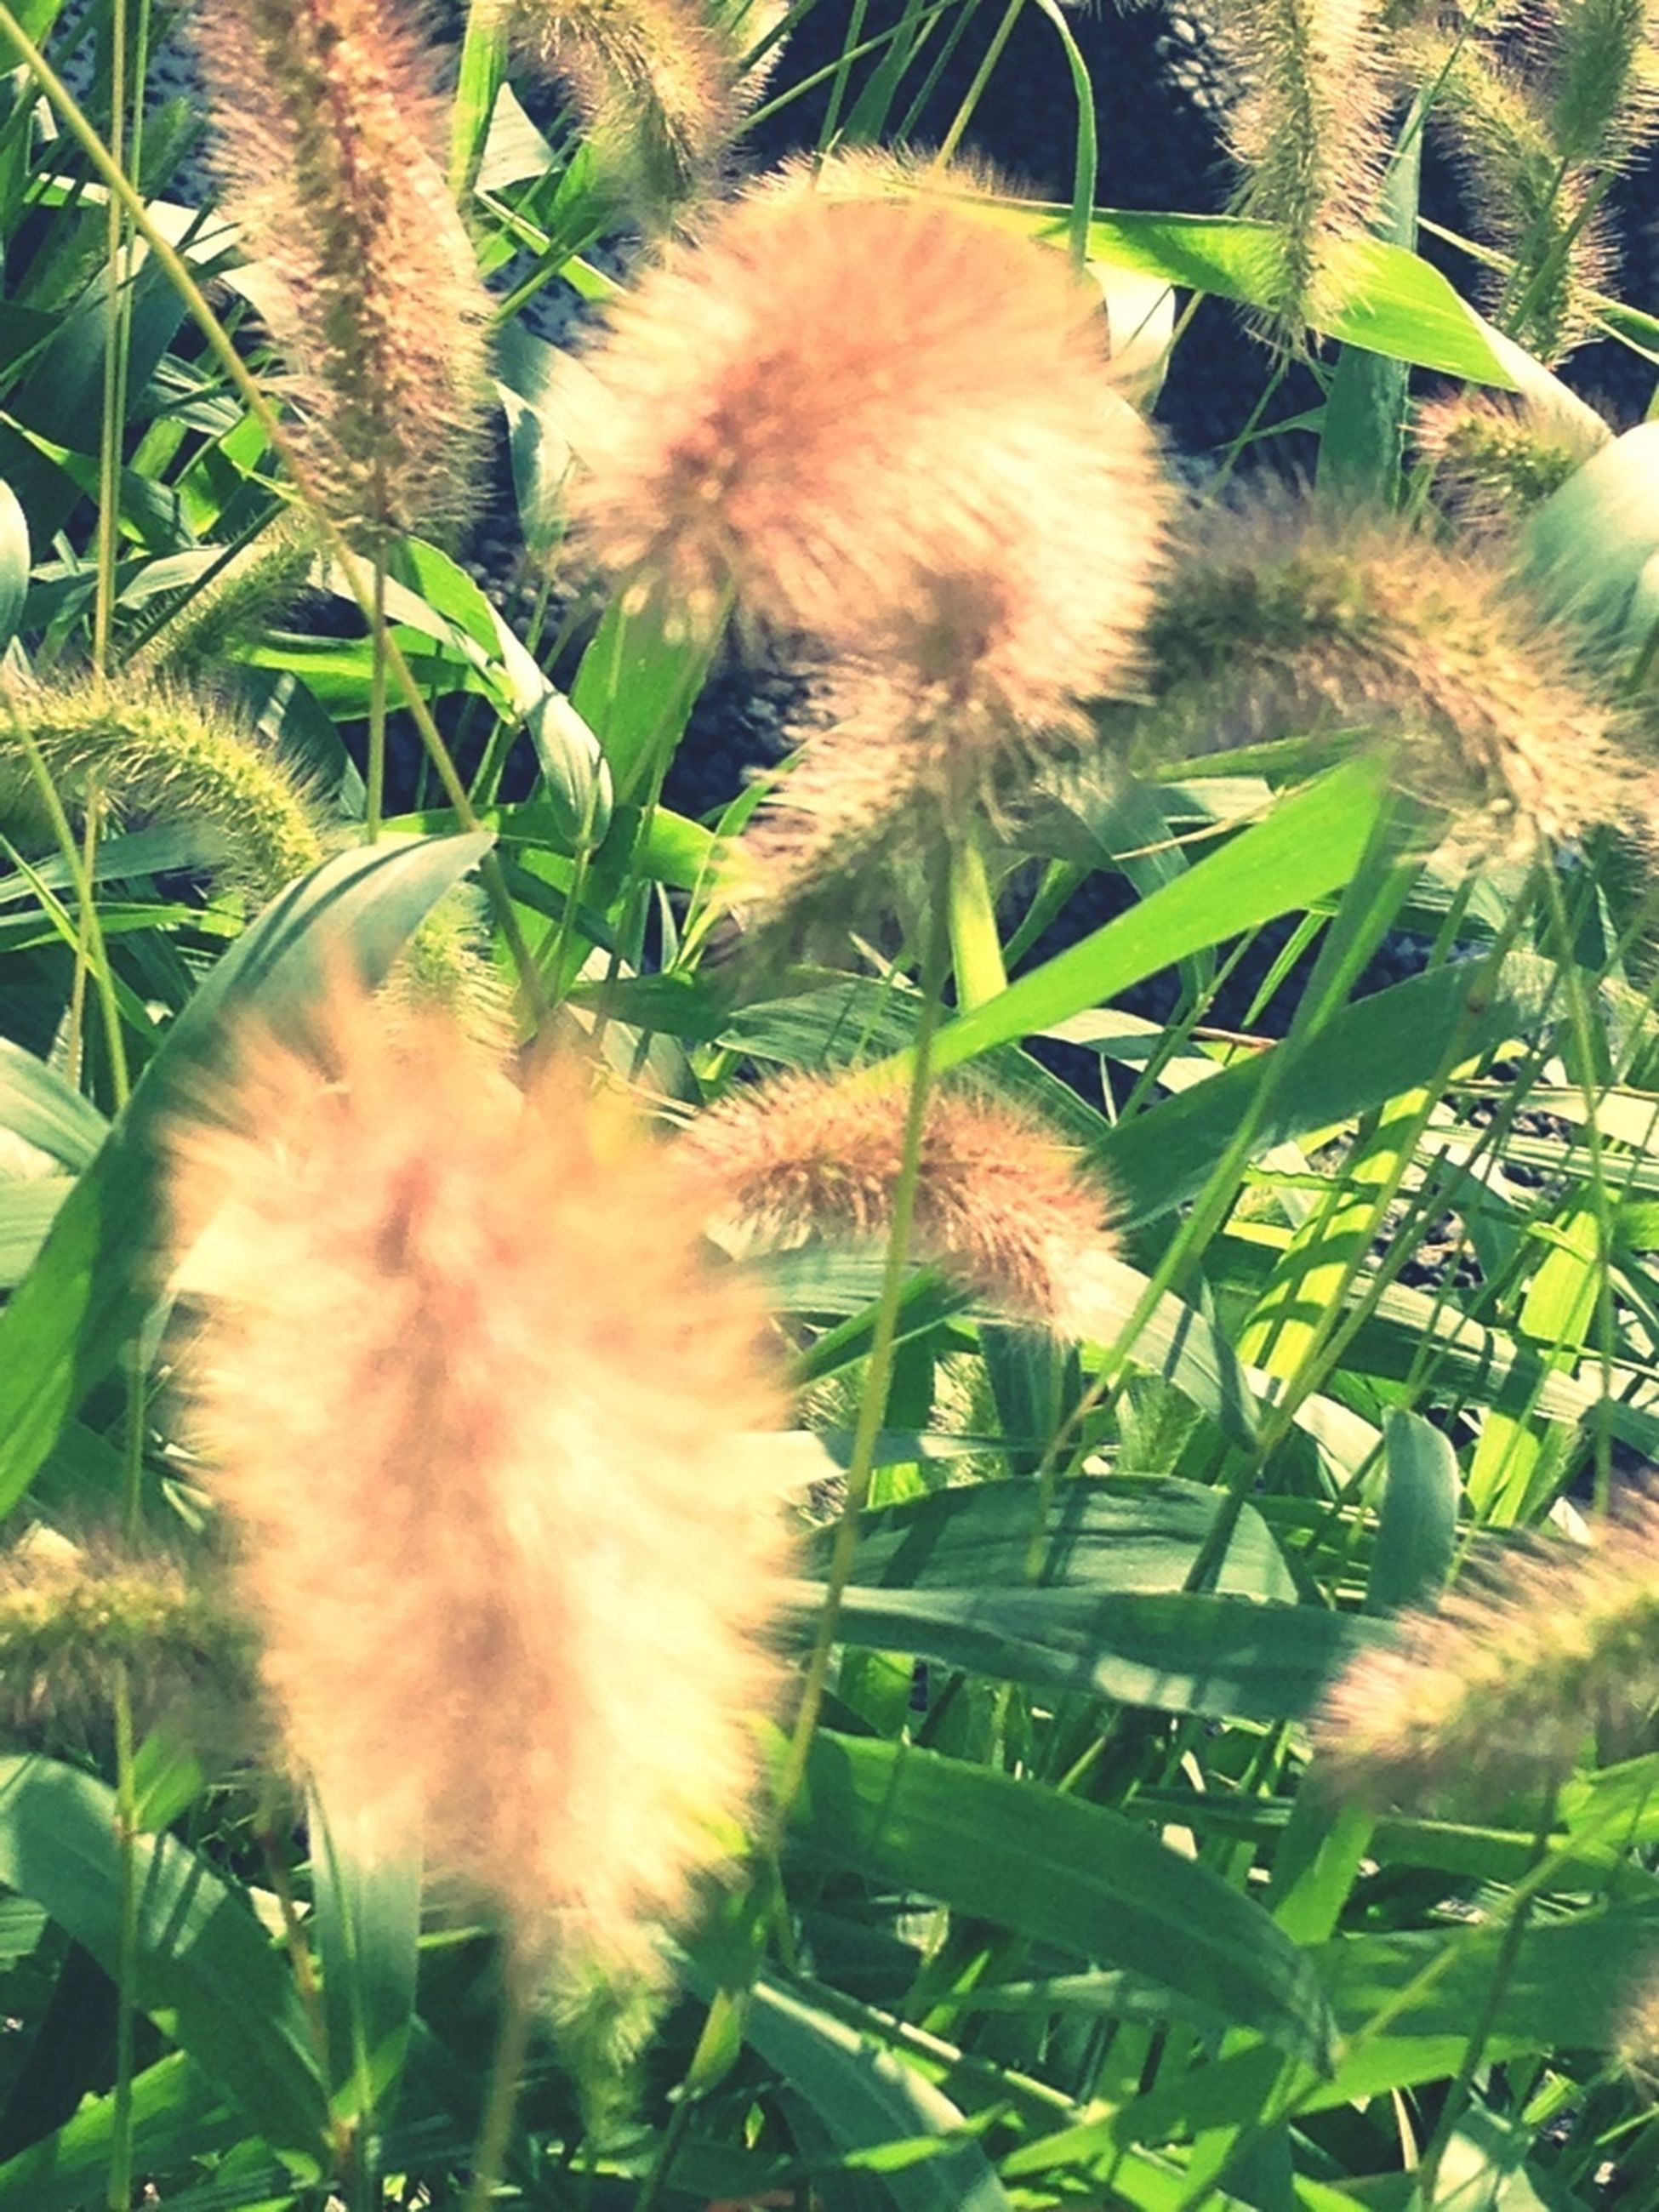 growth, flower, freshness, plant, nature, fragility, beauty in nature, close-up, dandelion, green color, flower head, uncultivated, day, outdoors, spiked, thorn, no people, focus on foreground, leaf, single flower